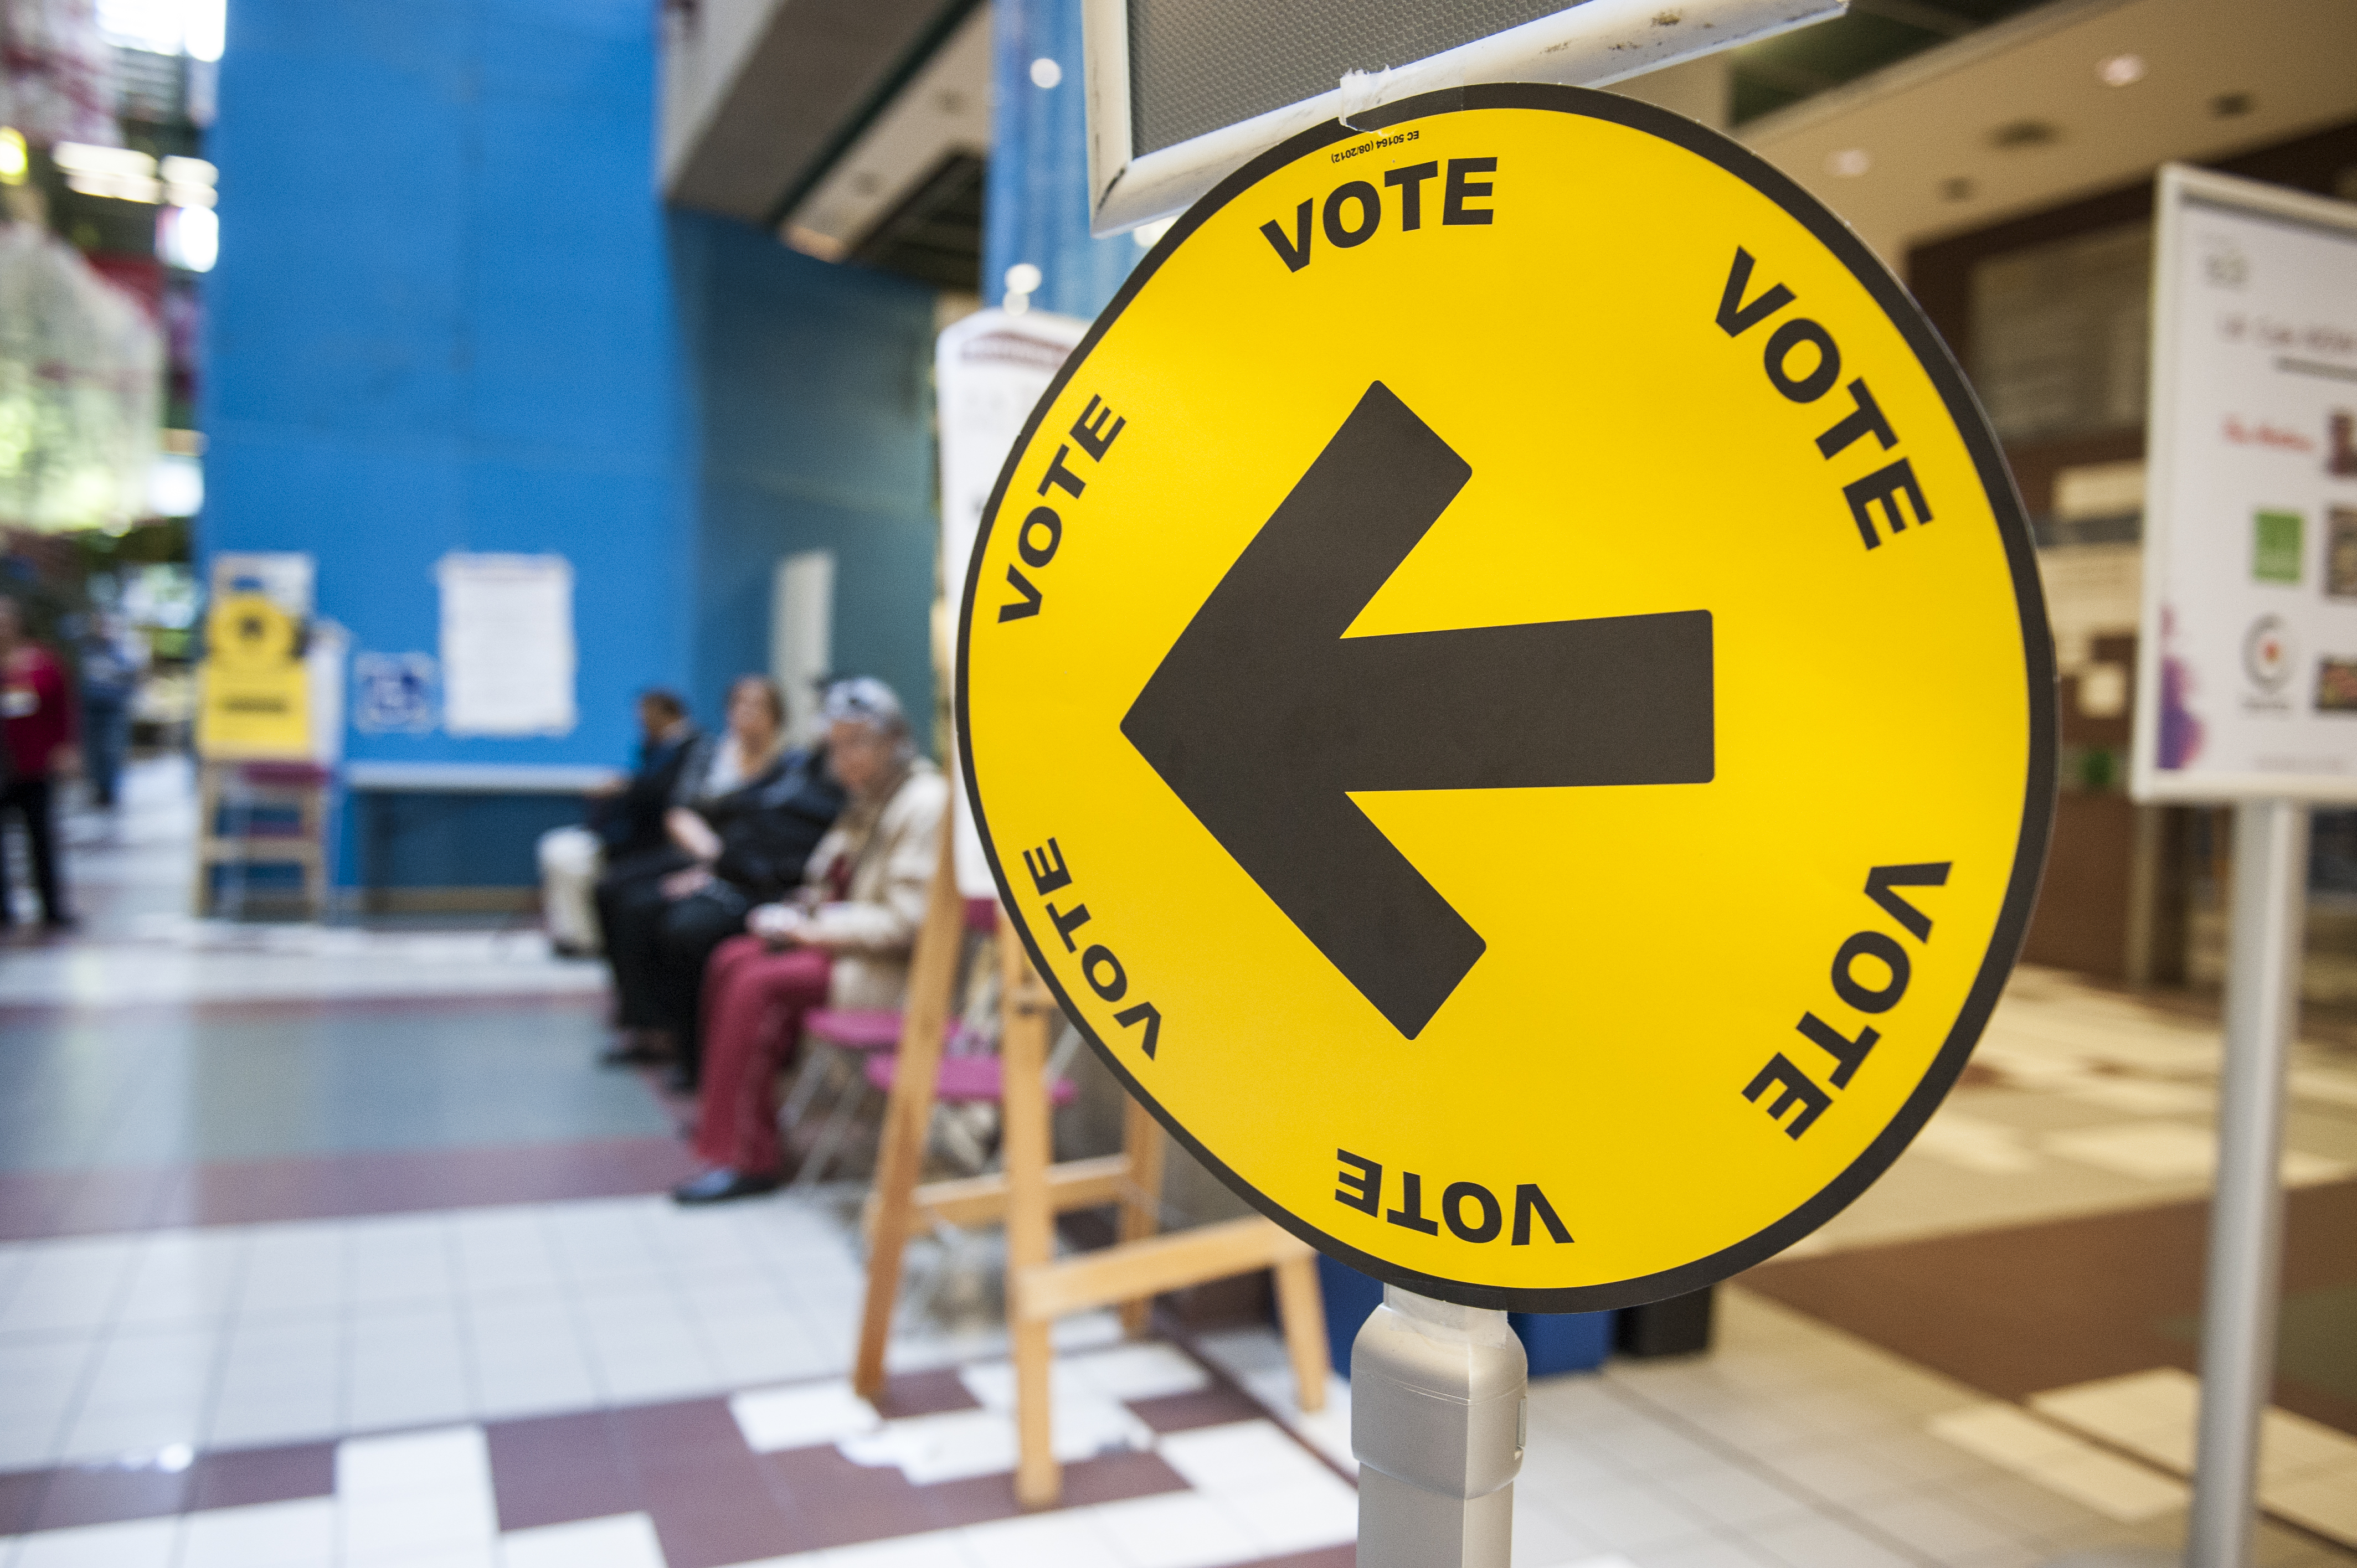 Concordia University is telling students who are registered in a different riding and voted on campus by Oct. 8 their vote will be counted. Photo by Andrej Ivanov.